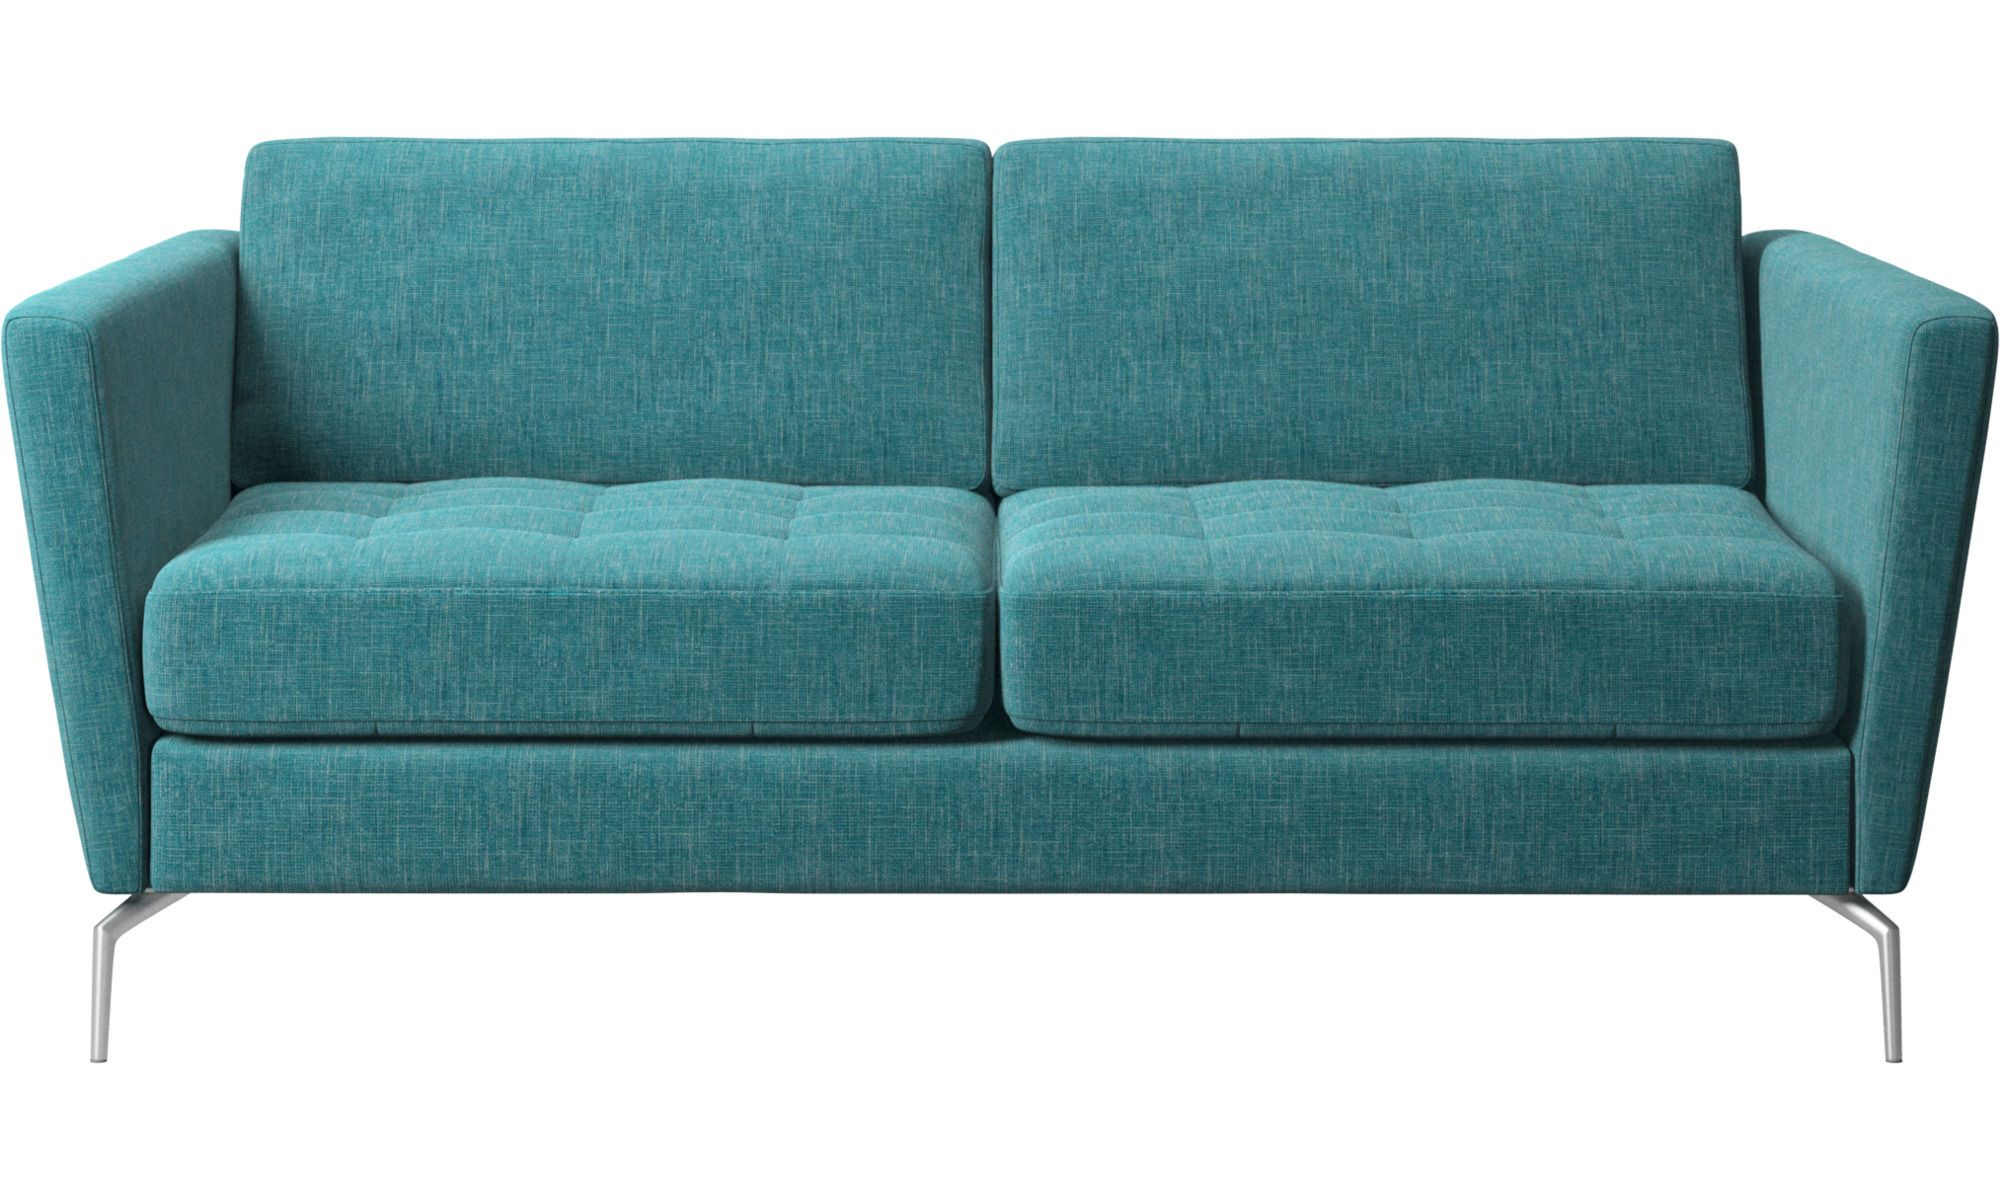 Account Suspended Cheap Sofa Sets Cheap Sofas Cheap Bedroom Furniture Sets